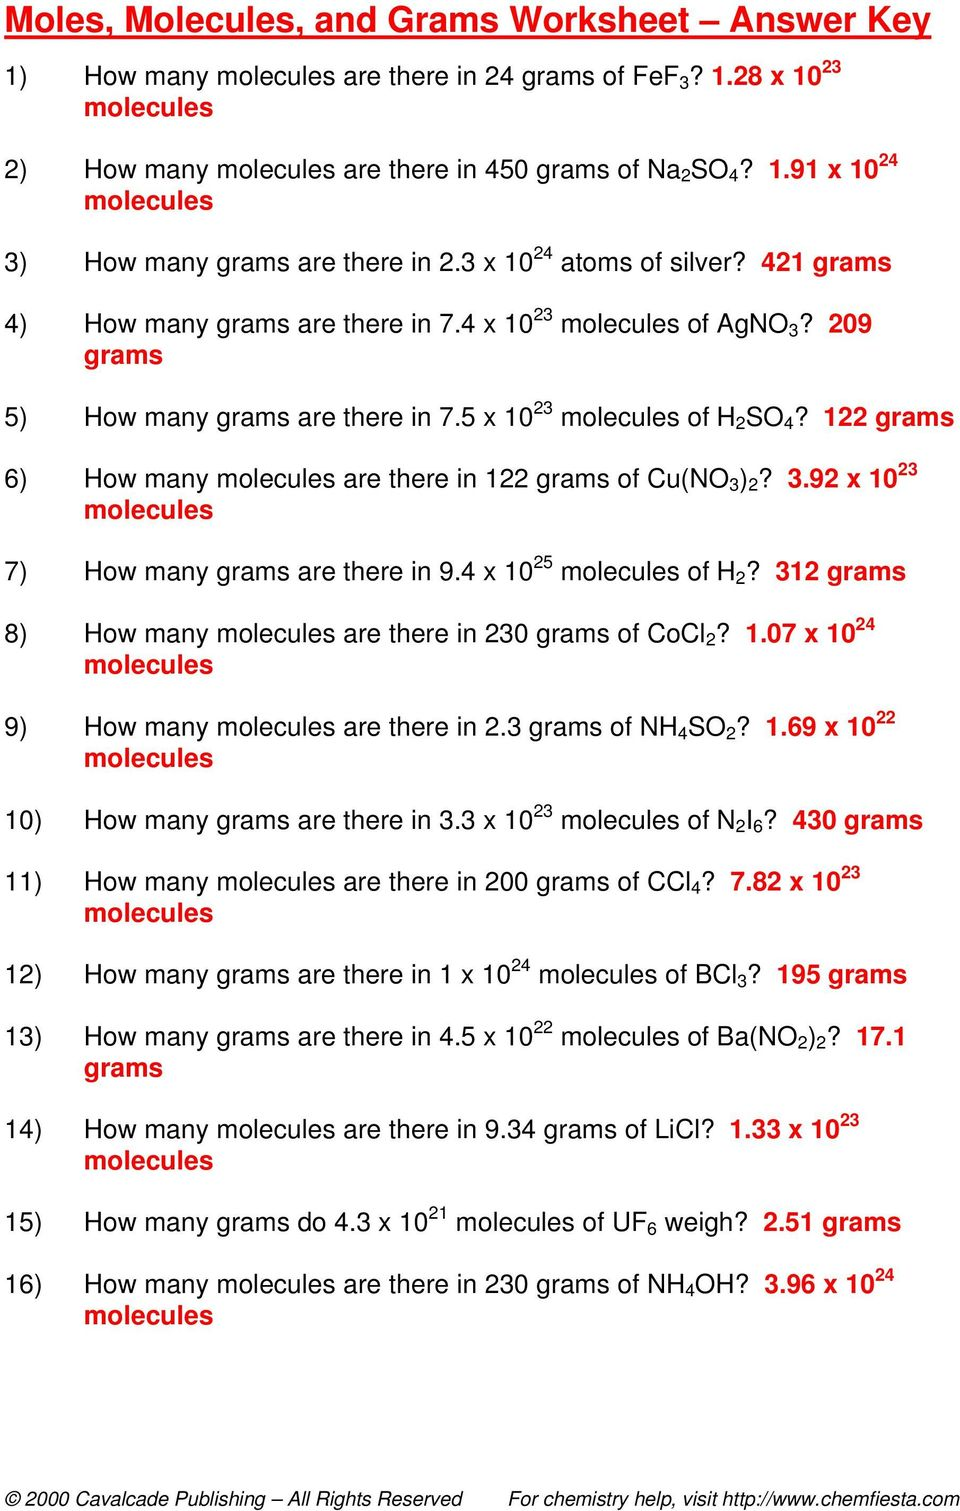 Worksheet Moles Molecules And Grams Worksheet molecules and grams worksheet answer key 122 6 how many are there in of cuno 3